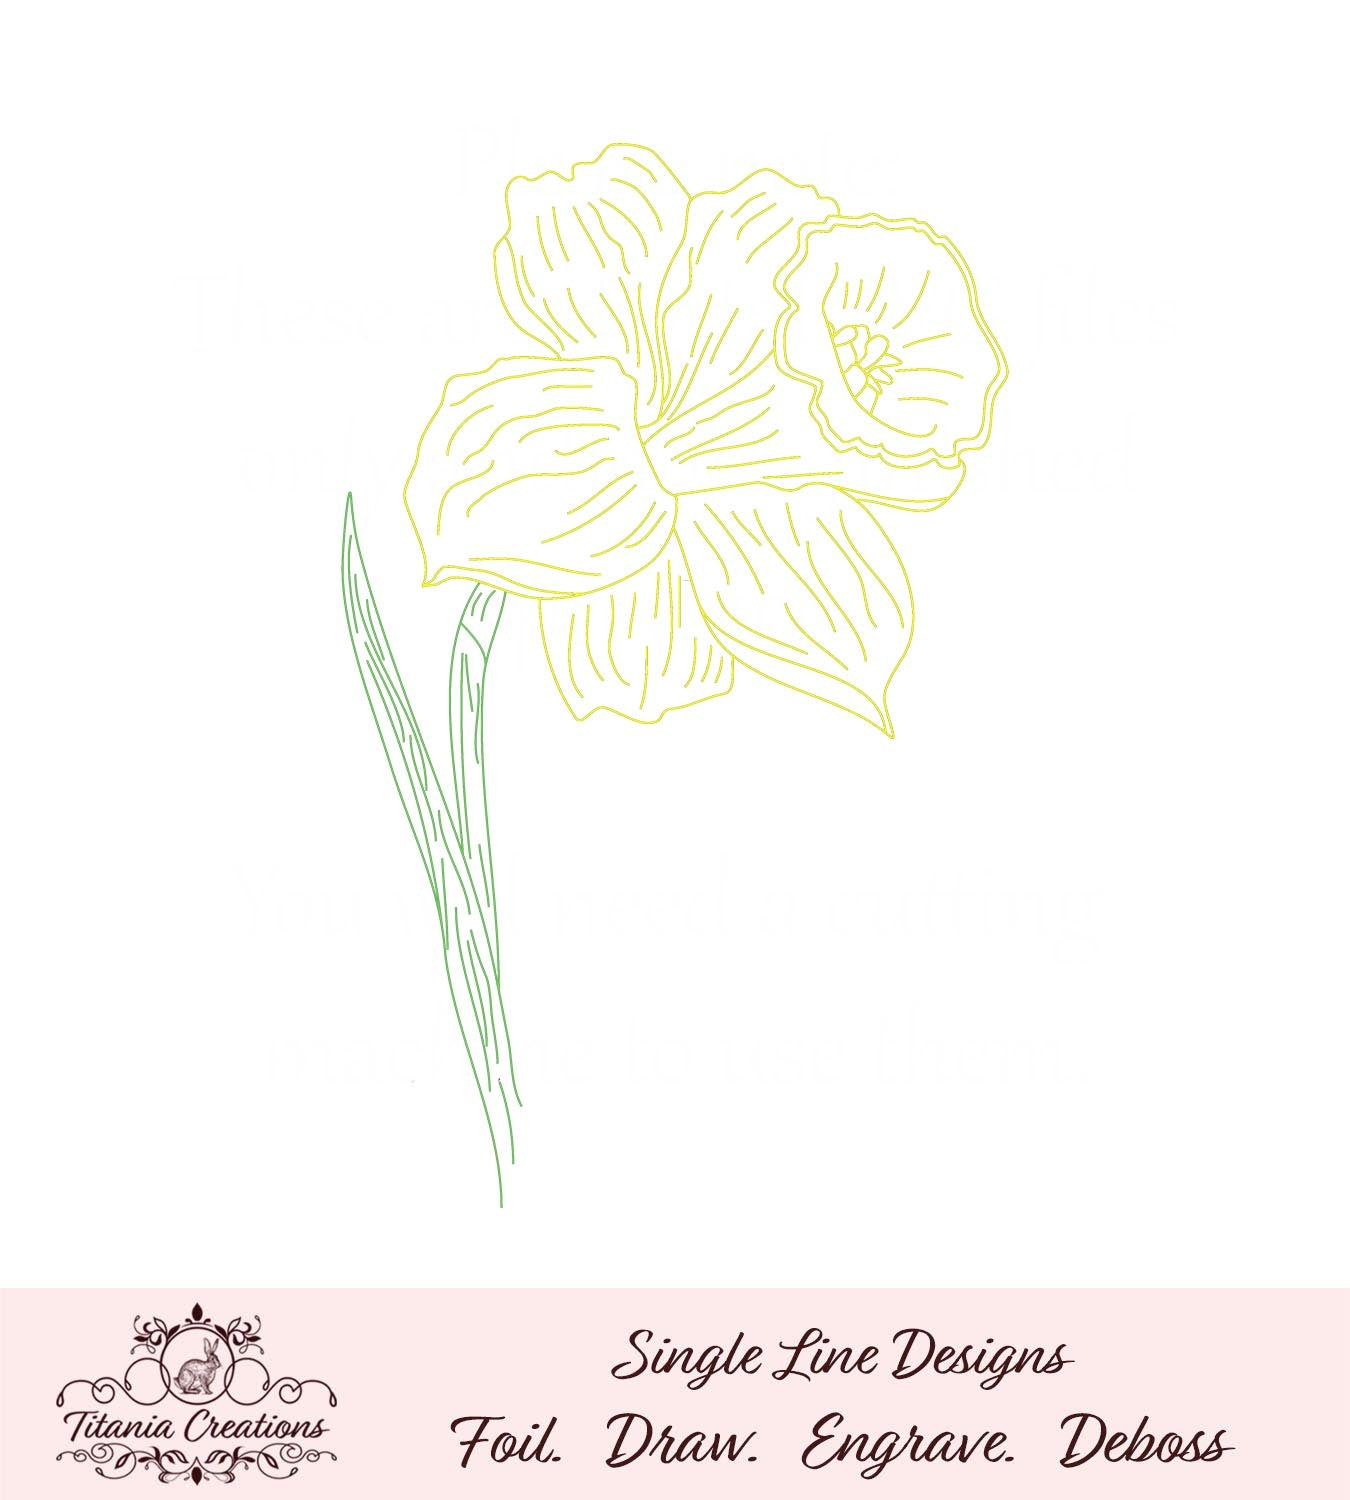 Single Line Sketch Daffodil Foil Quill SVG